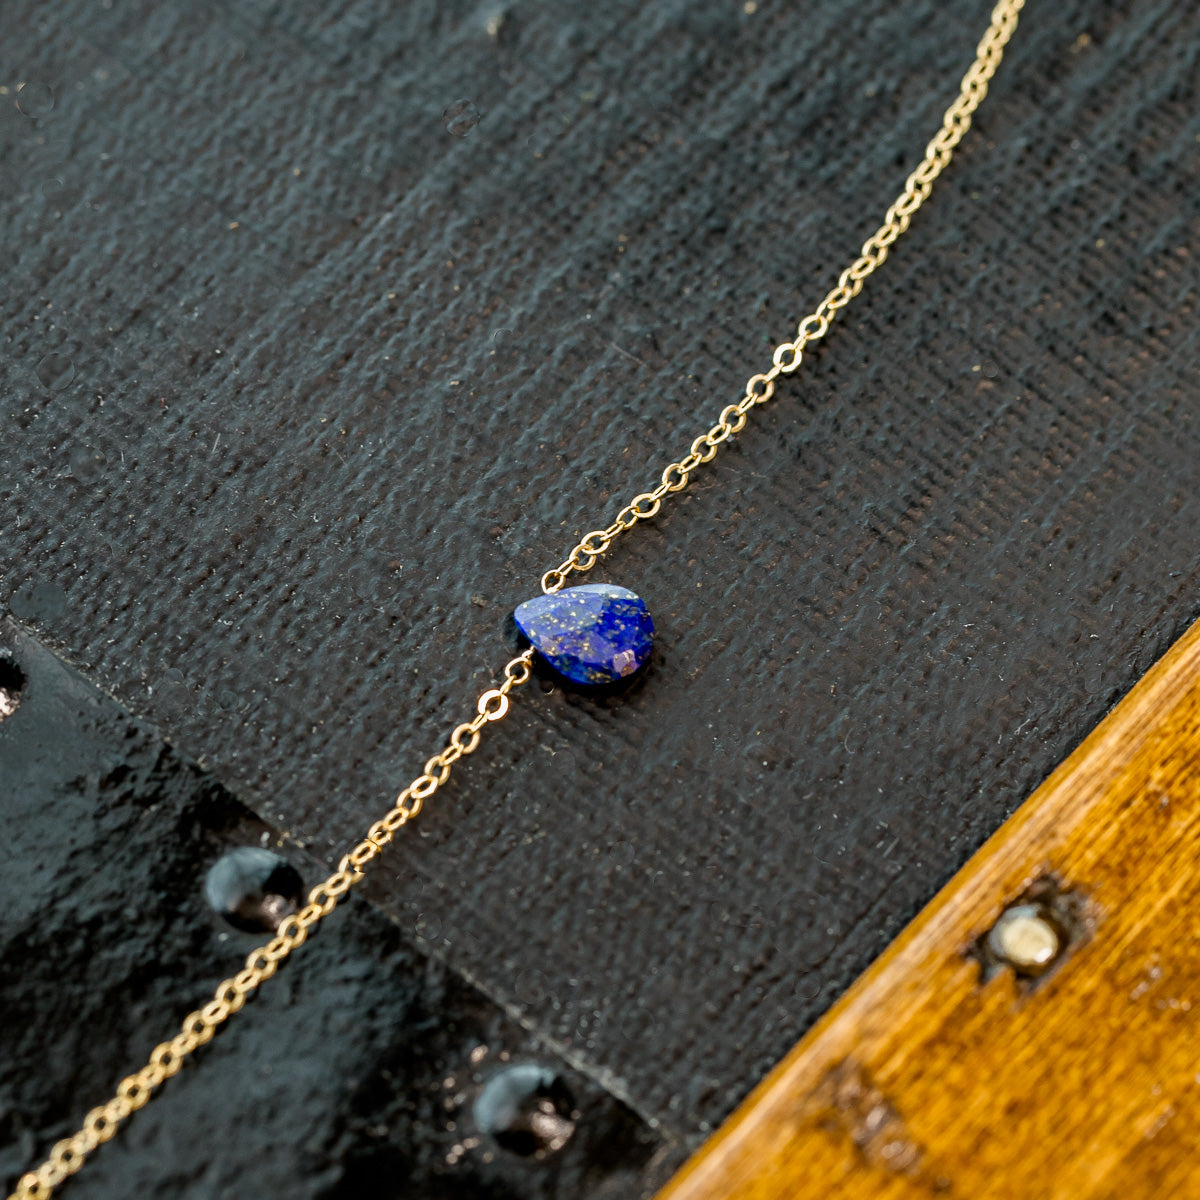 December Lapis Lazuli Birthstone Necklace Liz.Beth Jewelry Co.